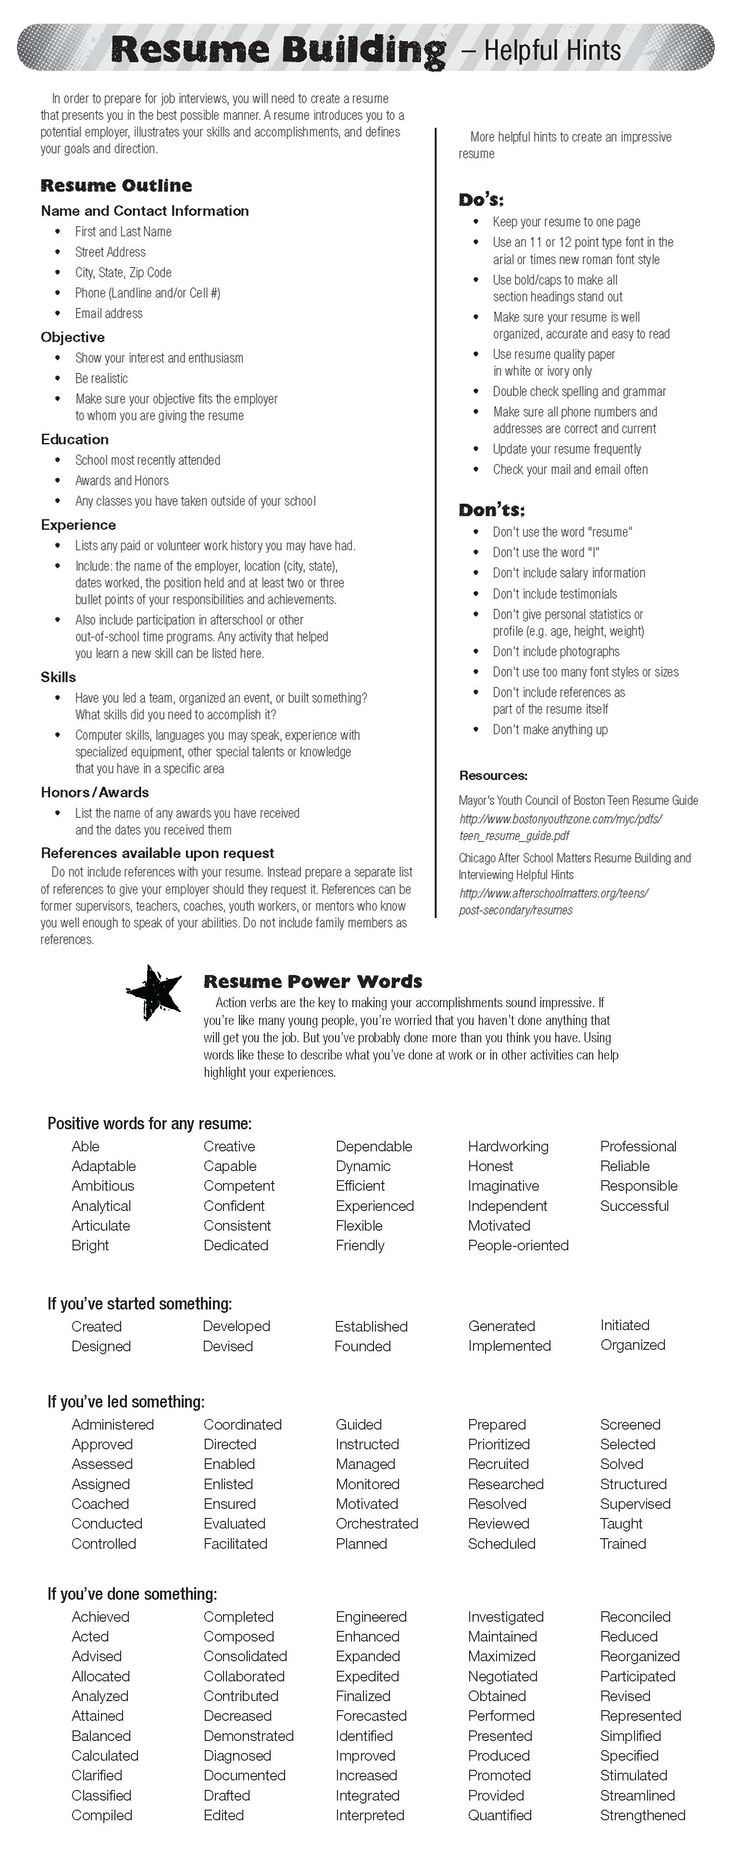 Opposenewapstandardsus  Pleasing  Ideas About Resume On Pinterest  Cv Format Resume Cv And  With Likable  Ideas About Resume On Pinterest  Cv Format Resume Cv And Resume Templates With Astonishing Teaching Resume Also Resume Layouts In Addition Indeed Resume Search And Difference Between Cv And Resume As Well As Action Words For Resume Additionally Resume Meaning From Pinterestcom With Opposenewapstandardsus  Likable  Ideas About Resume On Pinterest  Cv Format Resume Cv And  With Astonishing  Ideas About Resume On Pinterest  Cv Format Resume Cv And Resume Templates And Pleasing Teaching Resume Also Resume Layouts In Addition Indeed Resume Search From Pinterestcom